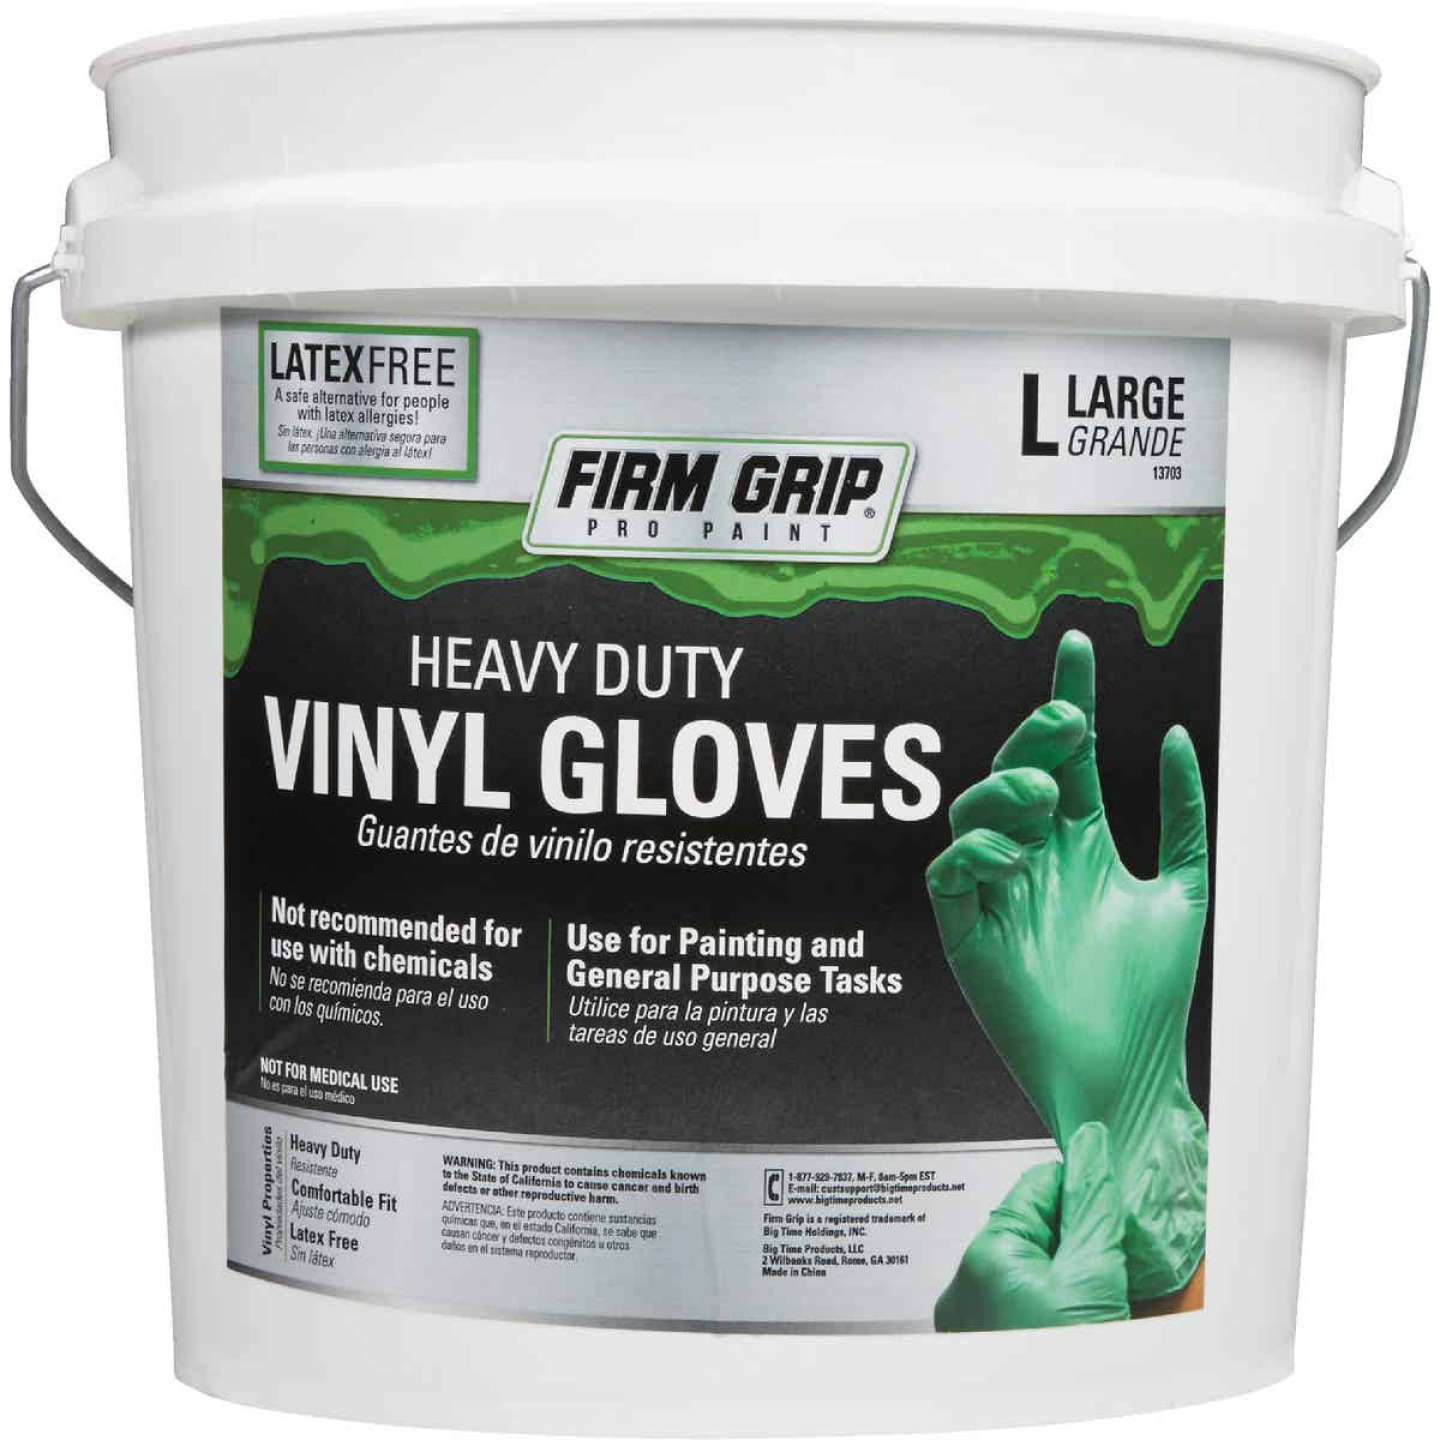 Firm Grip Large Heavy-Duty Vinyl Disposable Glove (300-Pack) Image 2